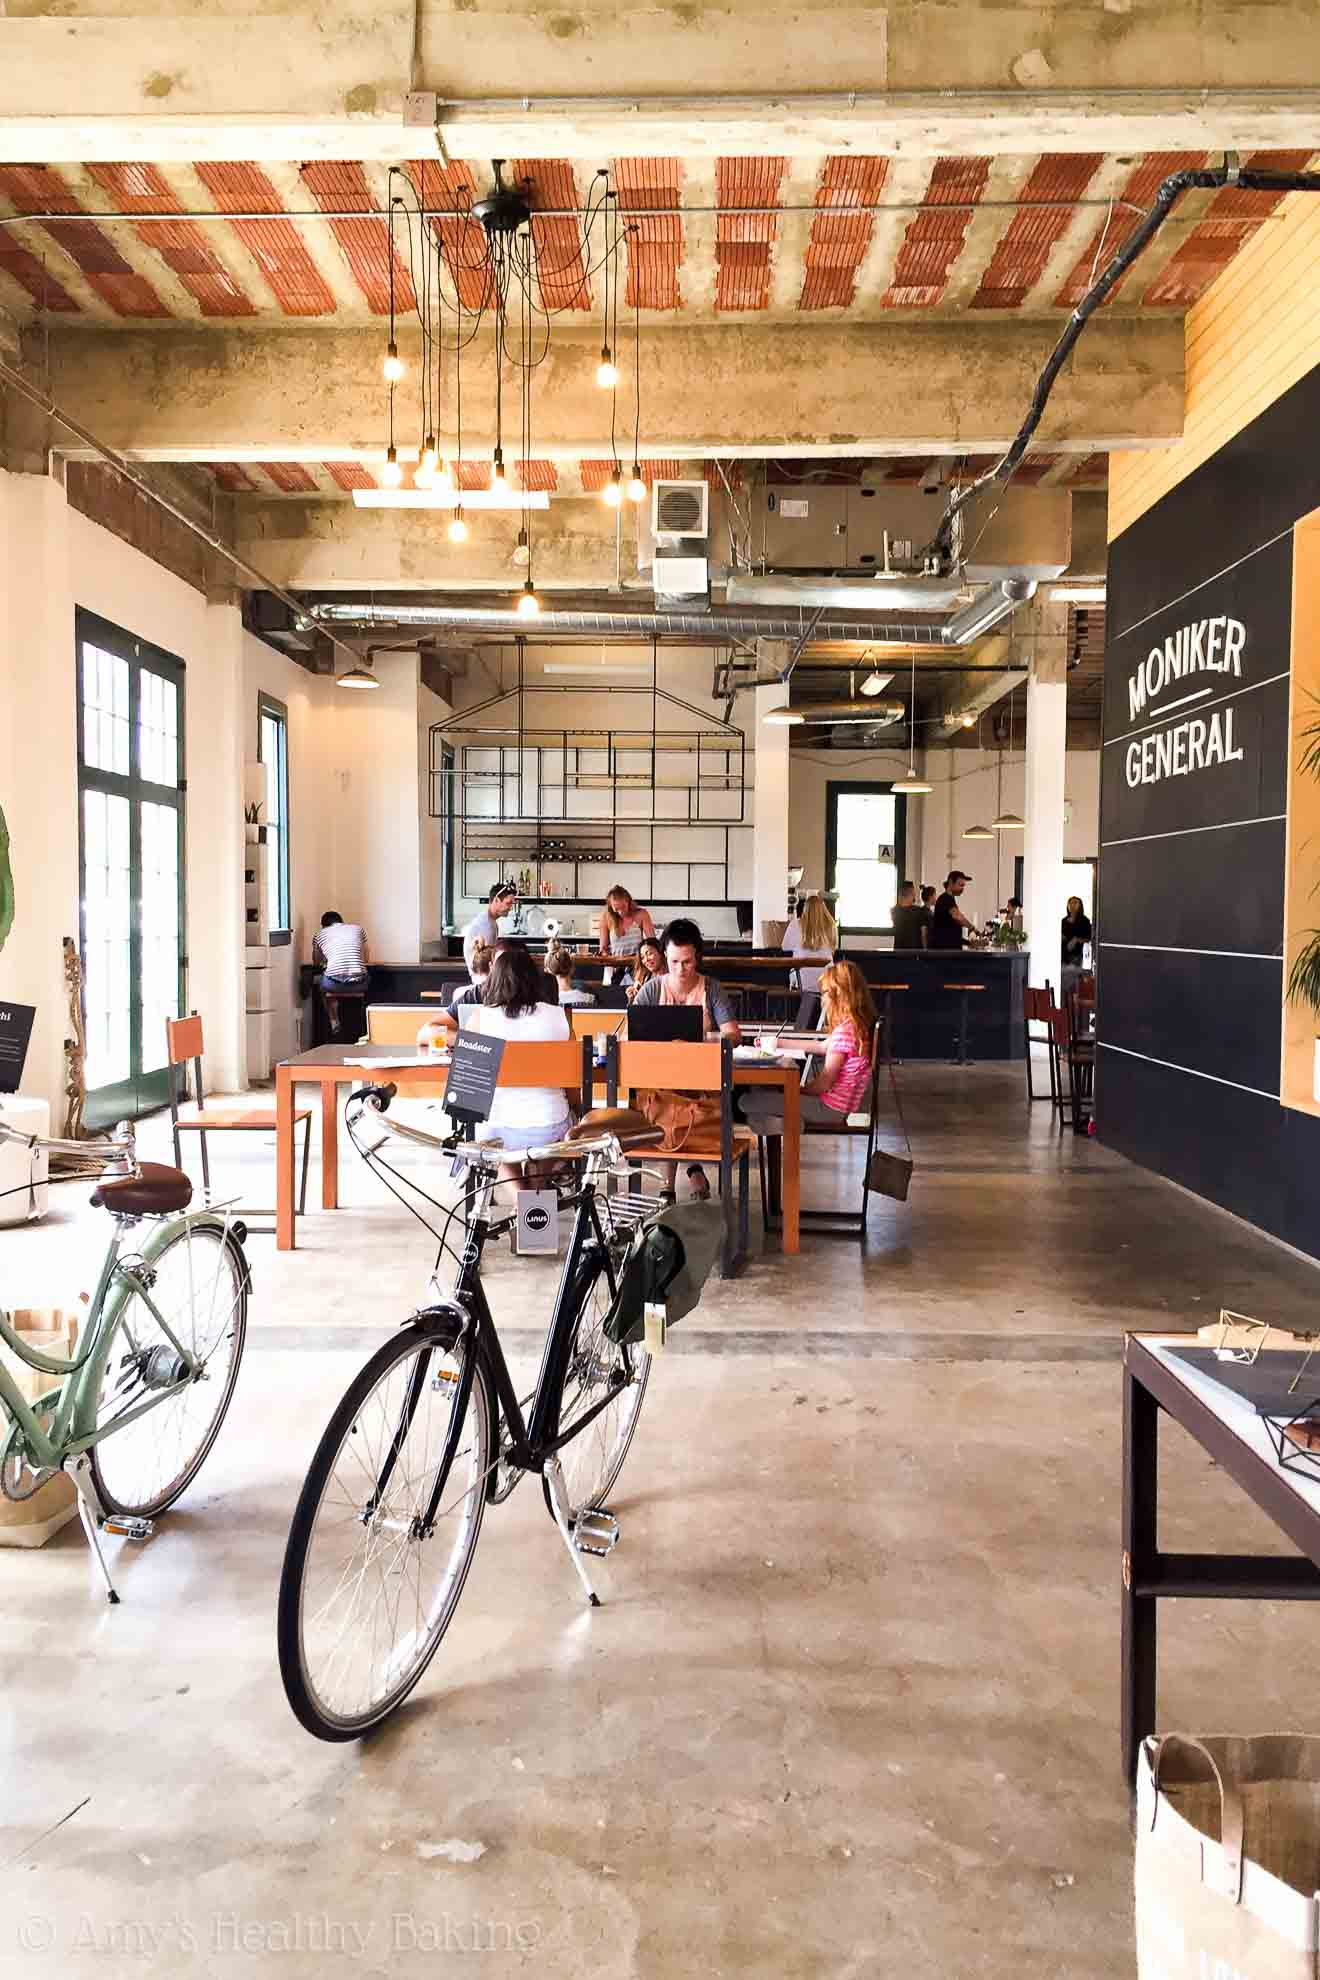 Exploring San Diego! @amybakeshealthy | Moniker Coffee Company -- a MUST TRY! @monikergeneral